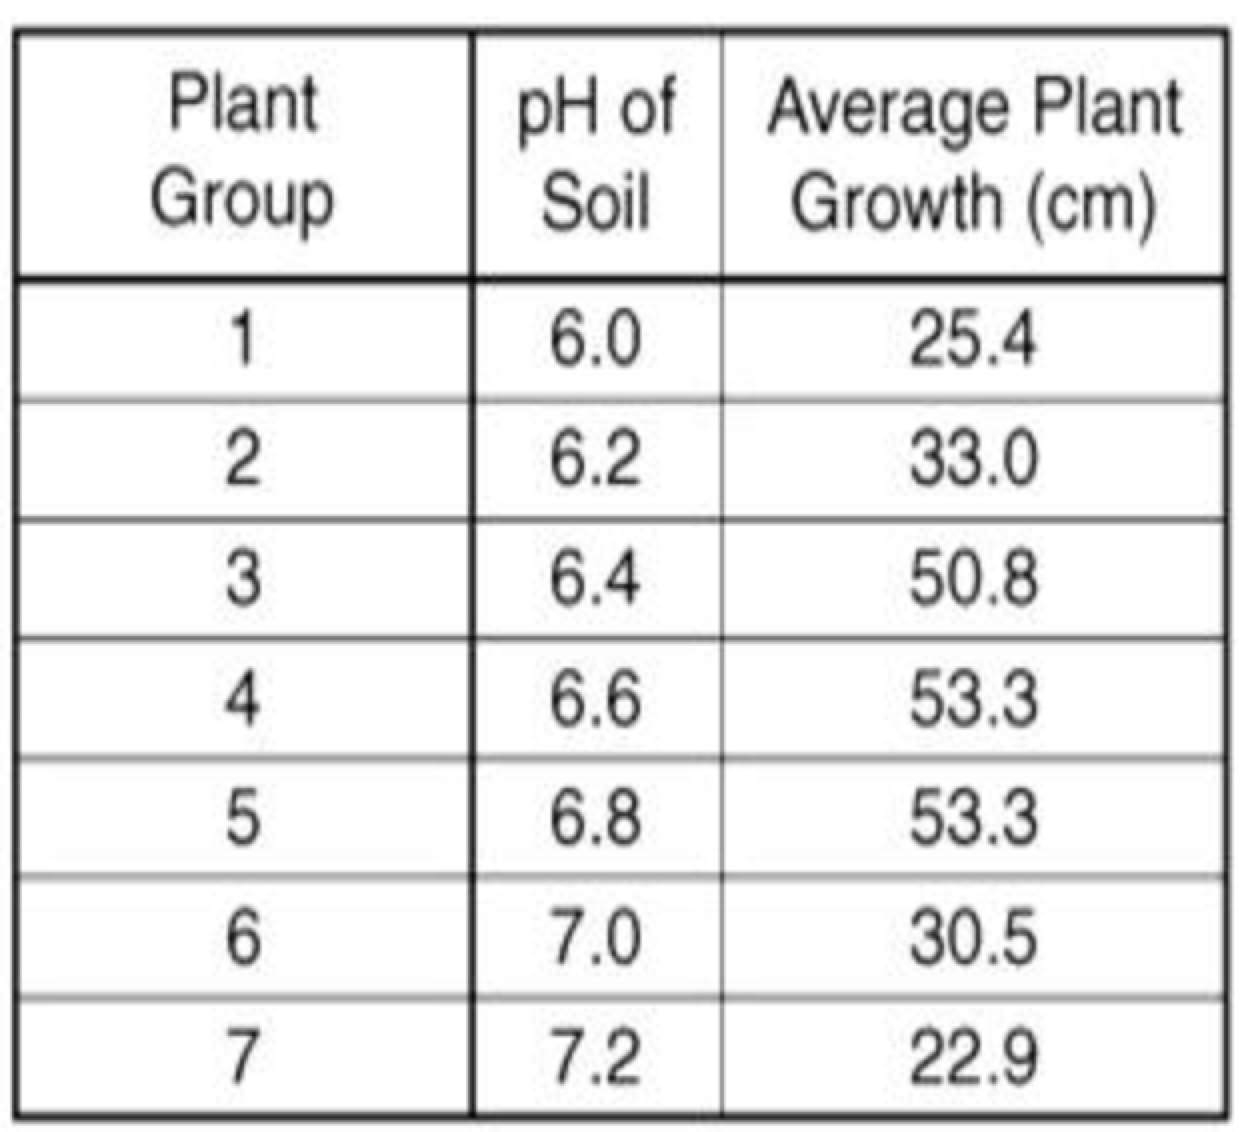 A table tracking plant growth and soil pH with 3 columns and 8 rows